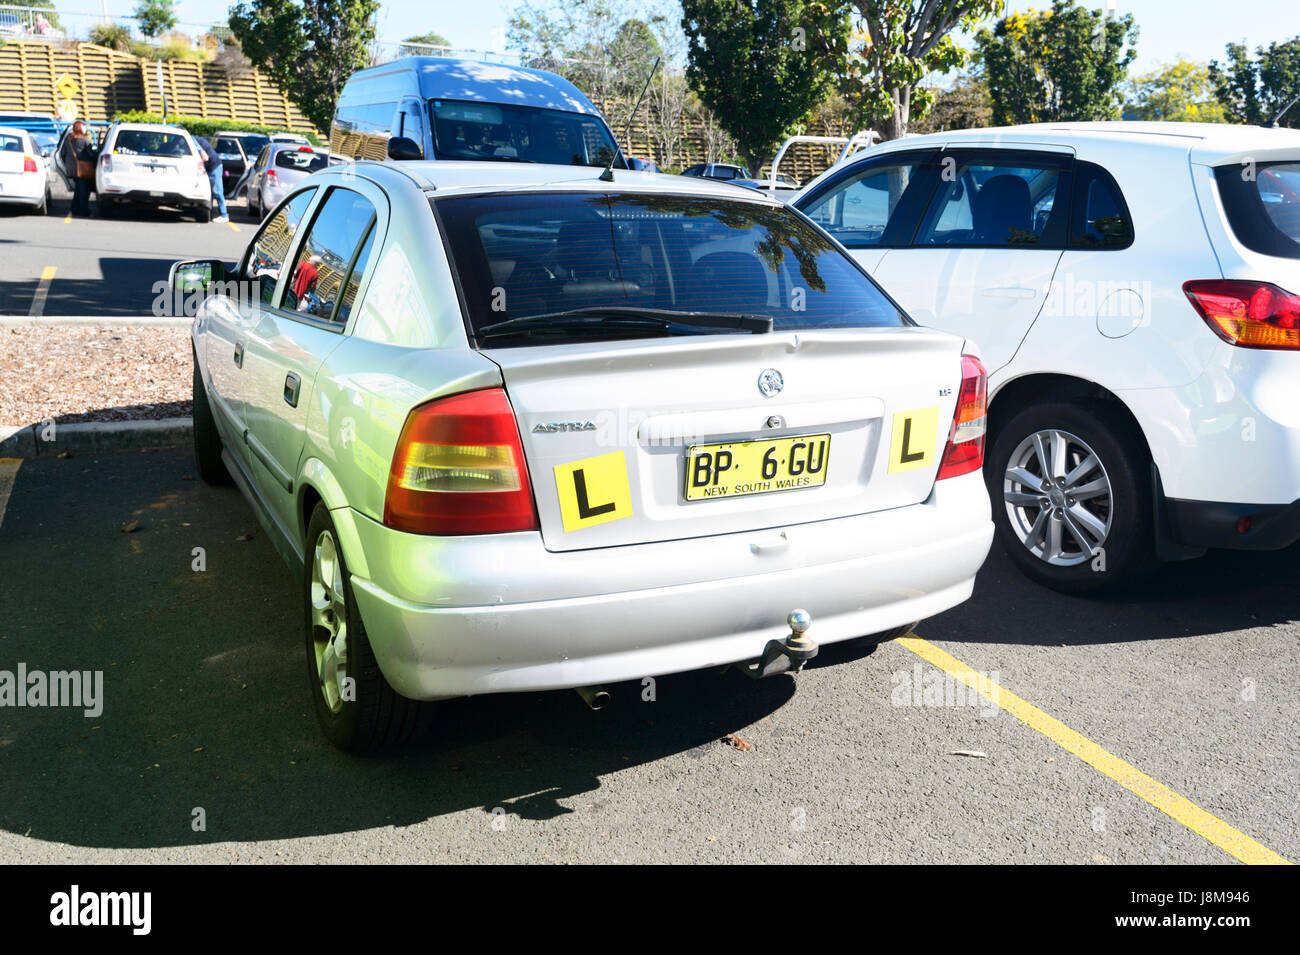 L Plate car badly parked - Stock Image